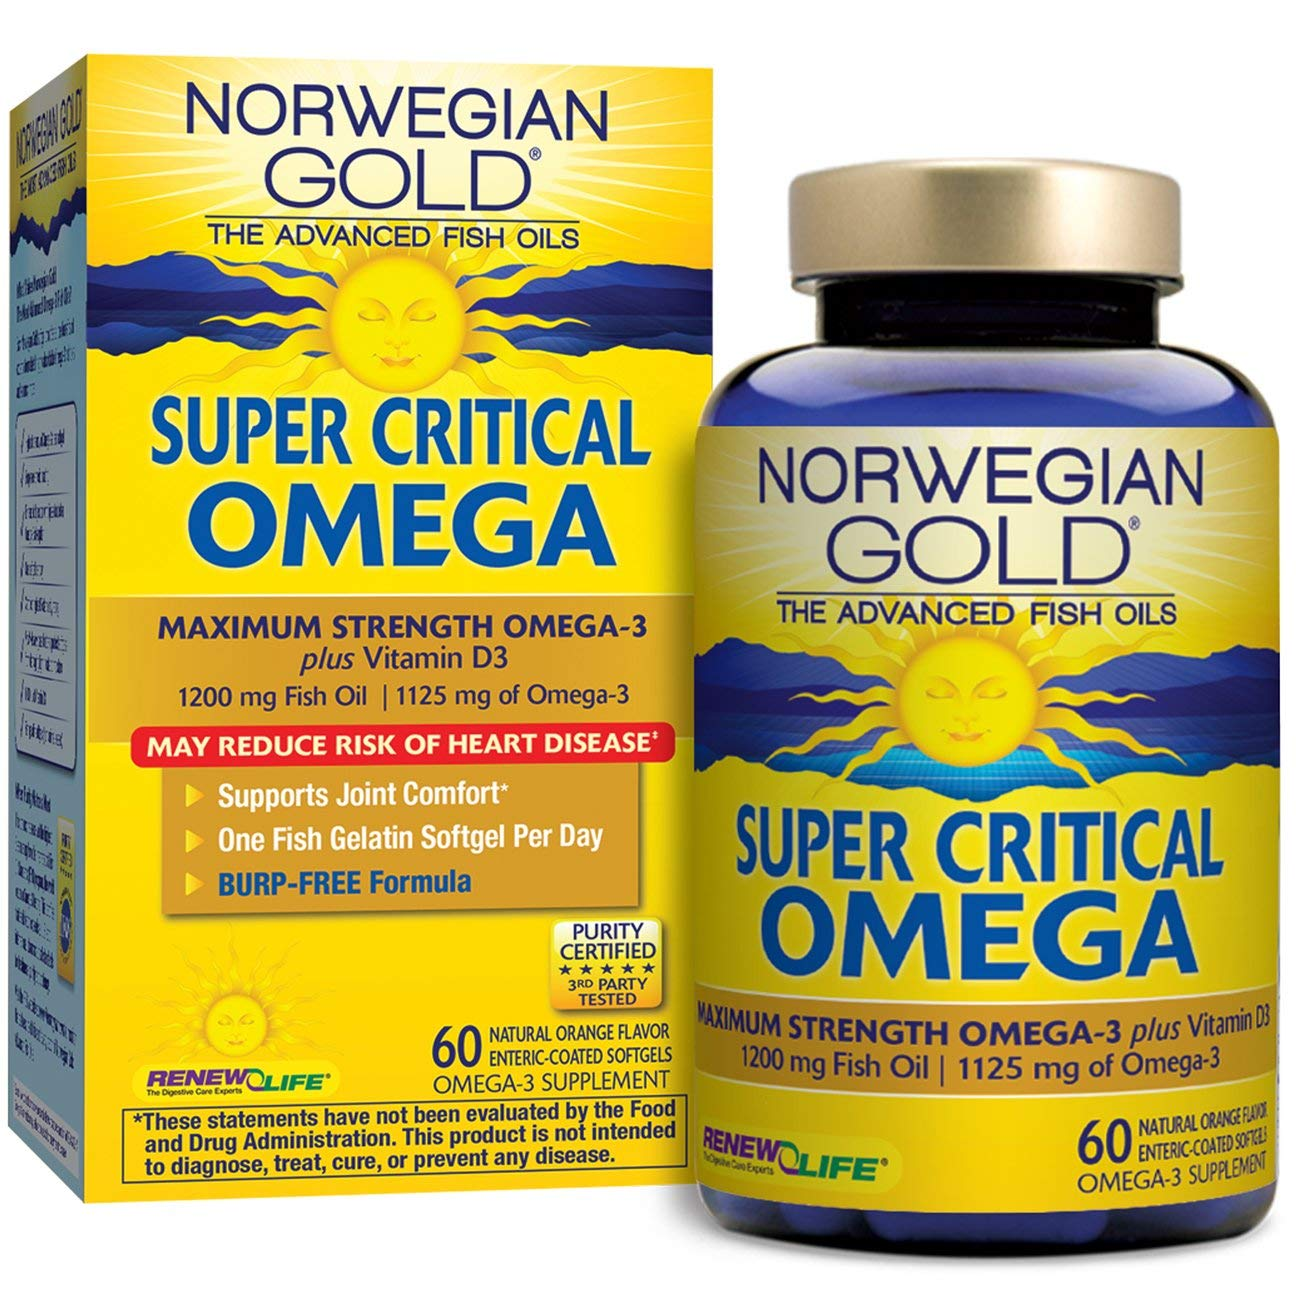 Renew Life Norwegian Gold Adult Fish Oil - Super Critical Omega, Fish Oil Omega 3 Supplement - 60 Burp-Free Softgel Capsules (Packaging May Vary)